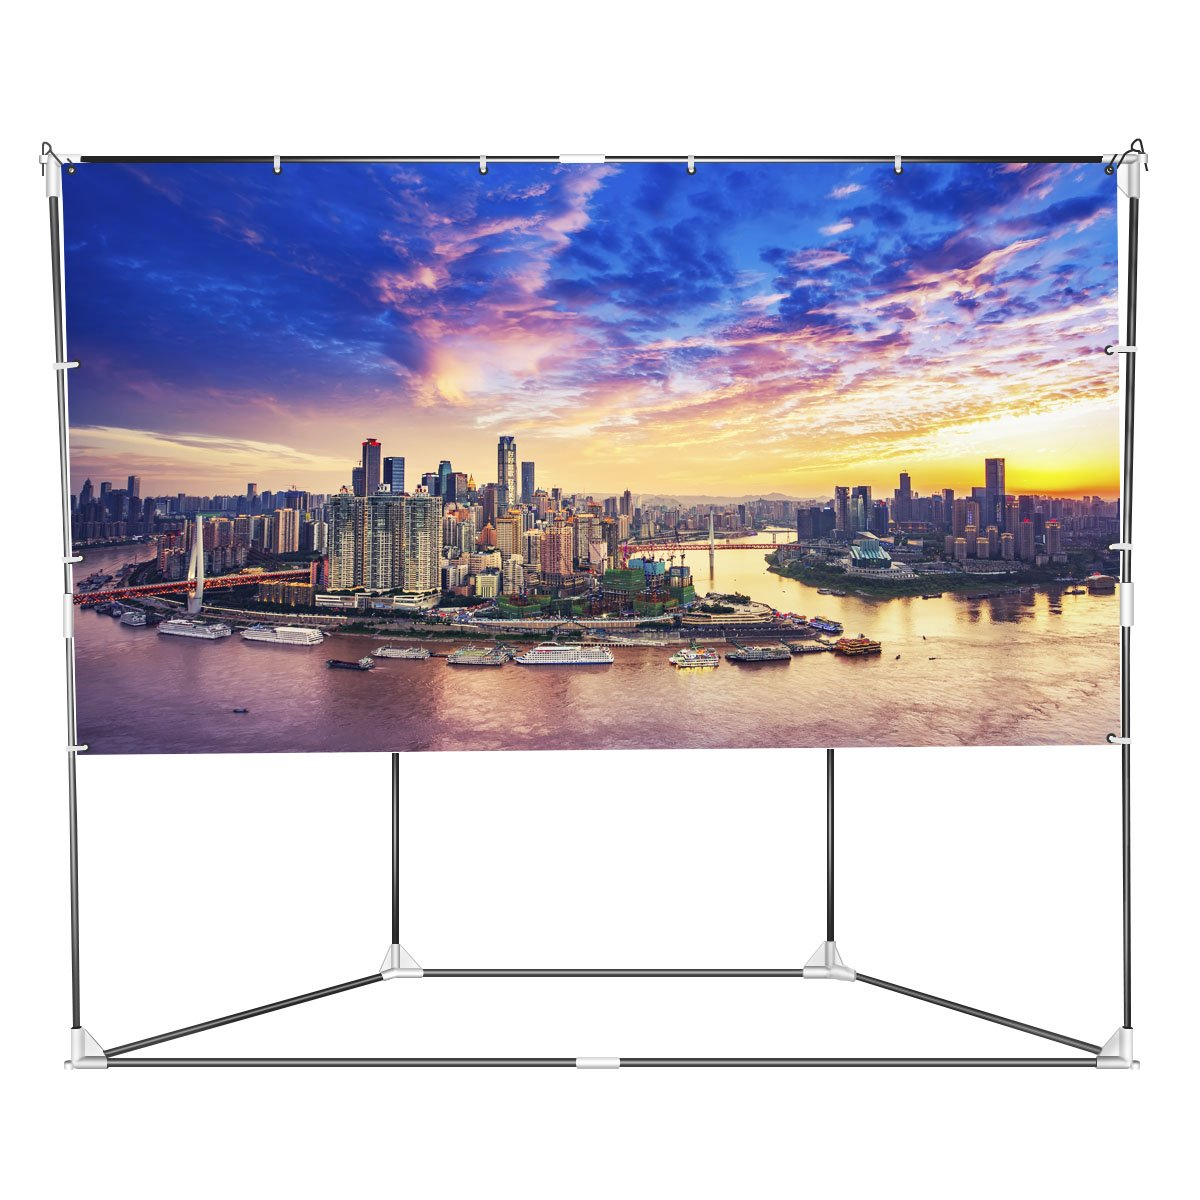 Auledio Outdoor Projector Screen, 100'' 16:9 Foldable Portable Projection Screen + Setup Stand + Transportable Bag Full Set for Camping and Recreational Events